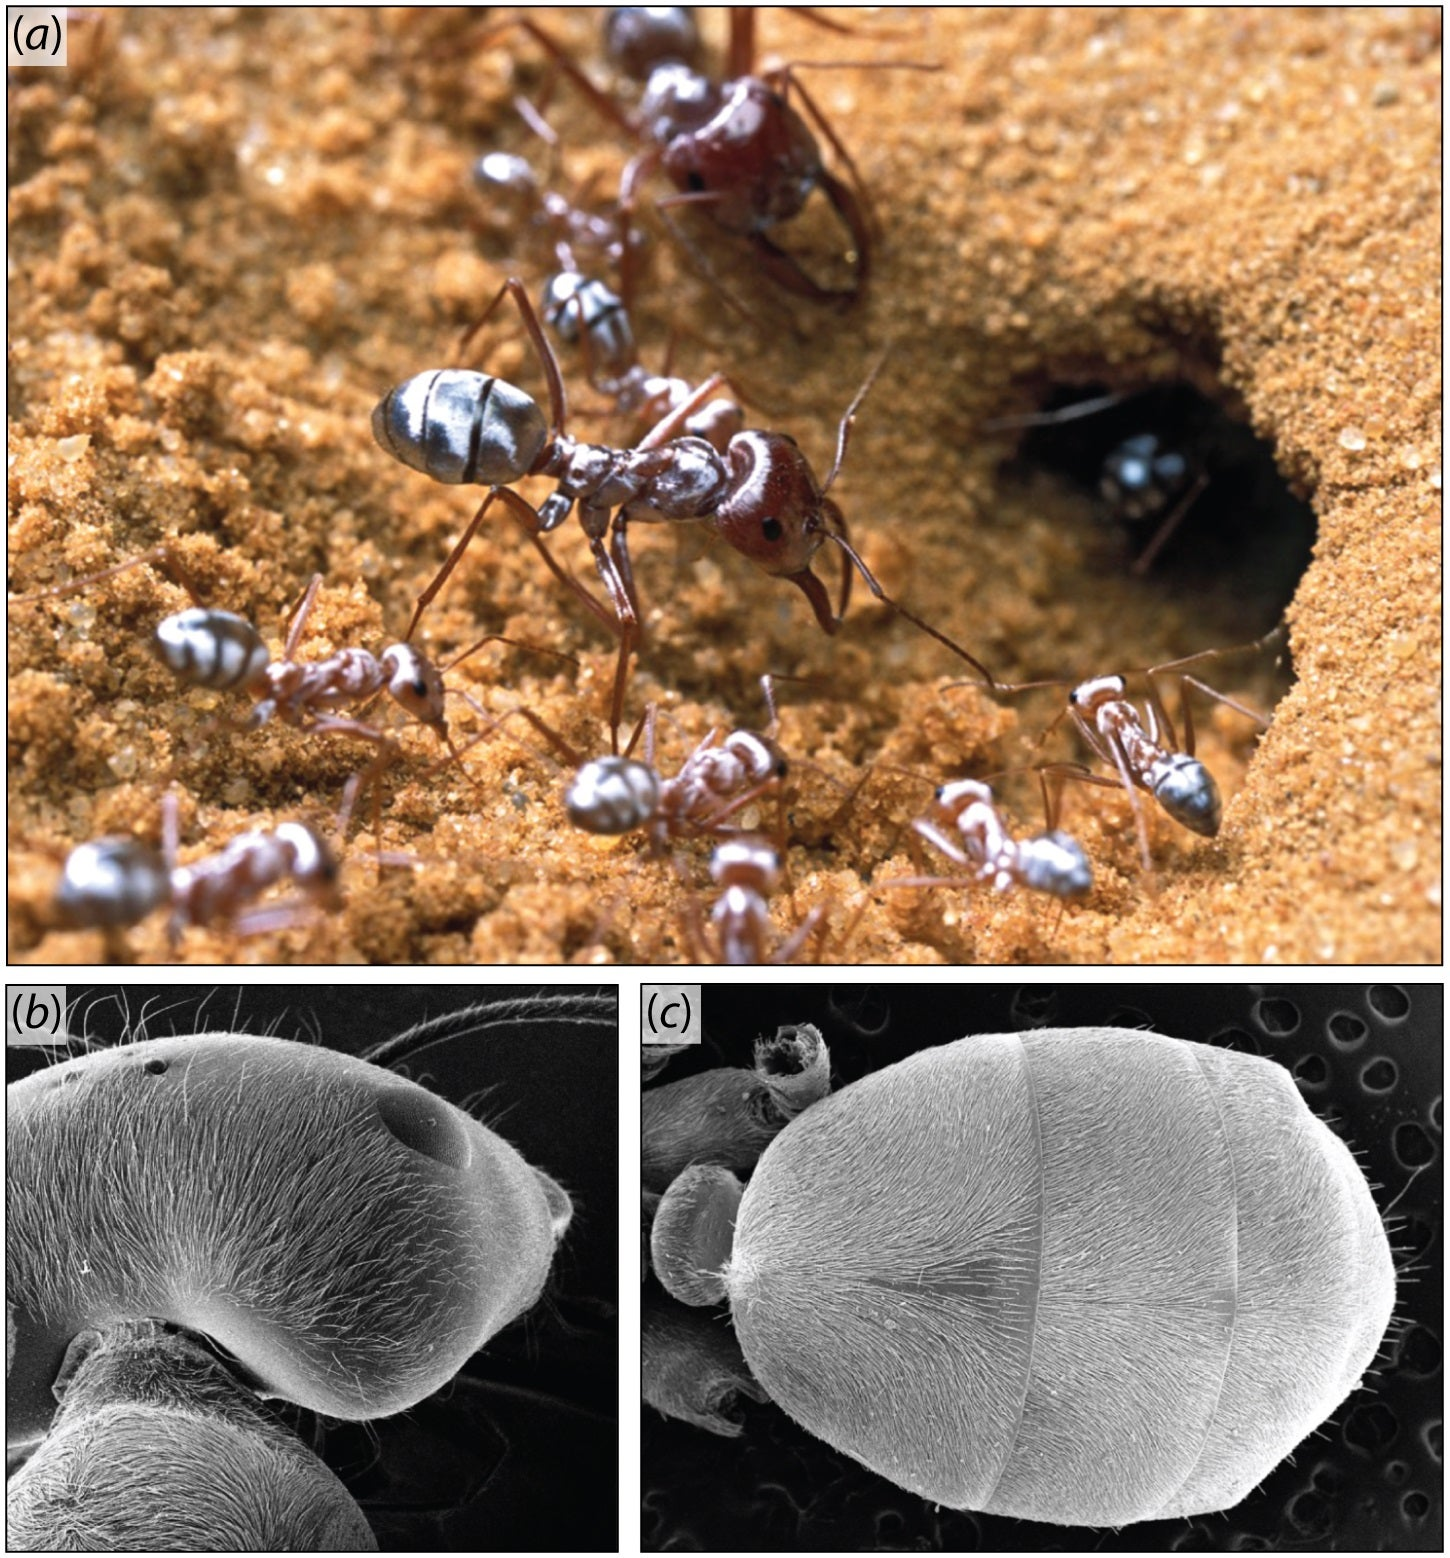 Prism-Like Hairs Help This Ant Beat The Heat